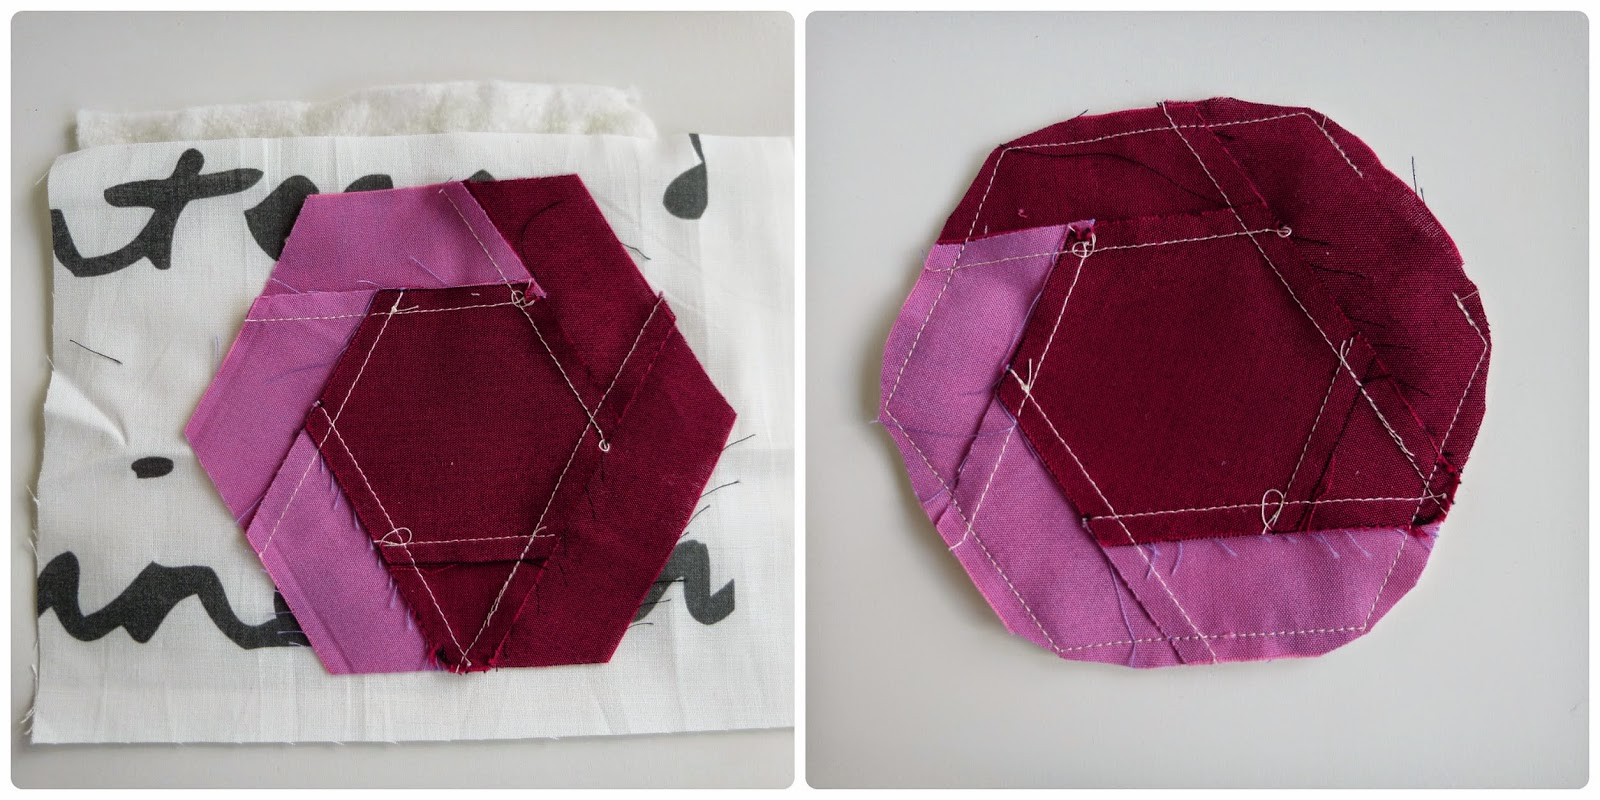 How to sew a log-cabin hexagon to make a table runner and matching set of coasters.